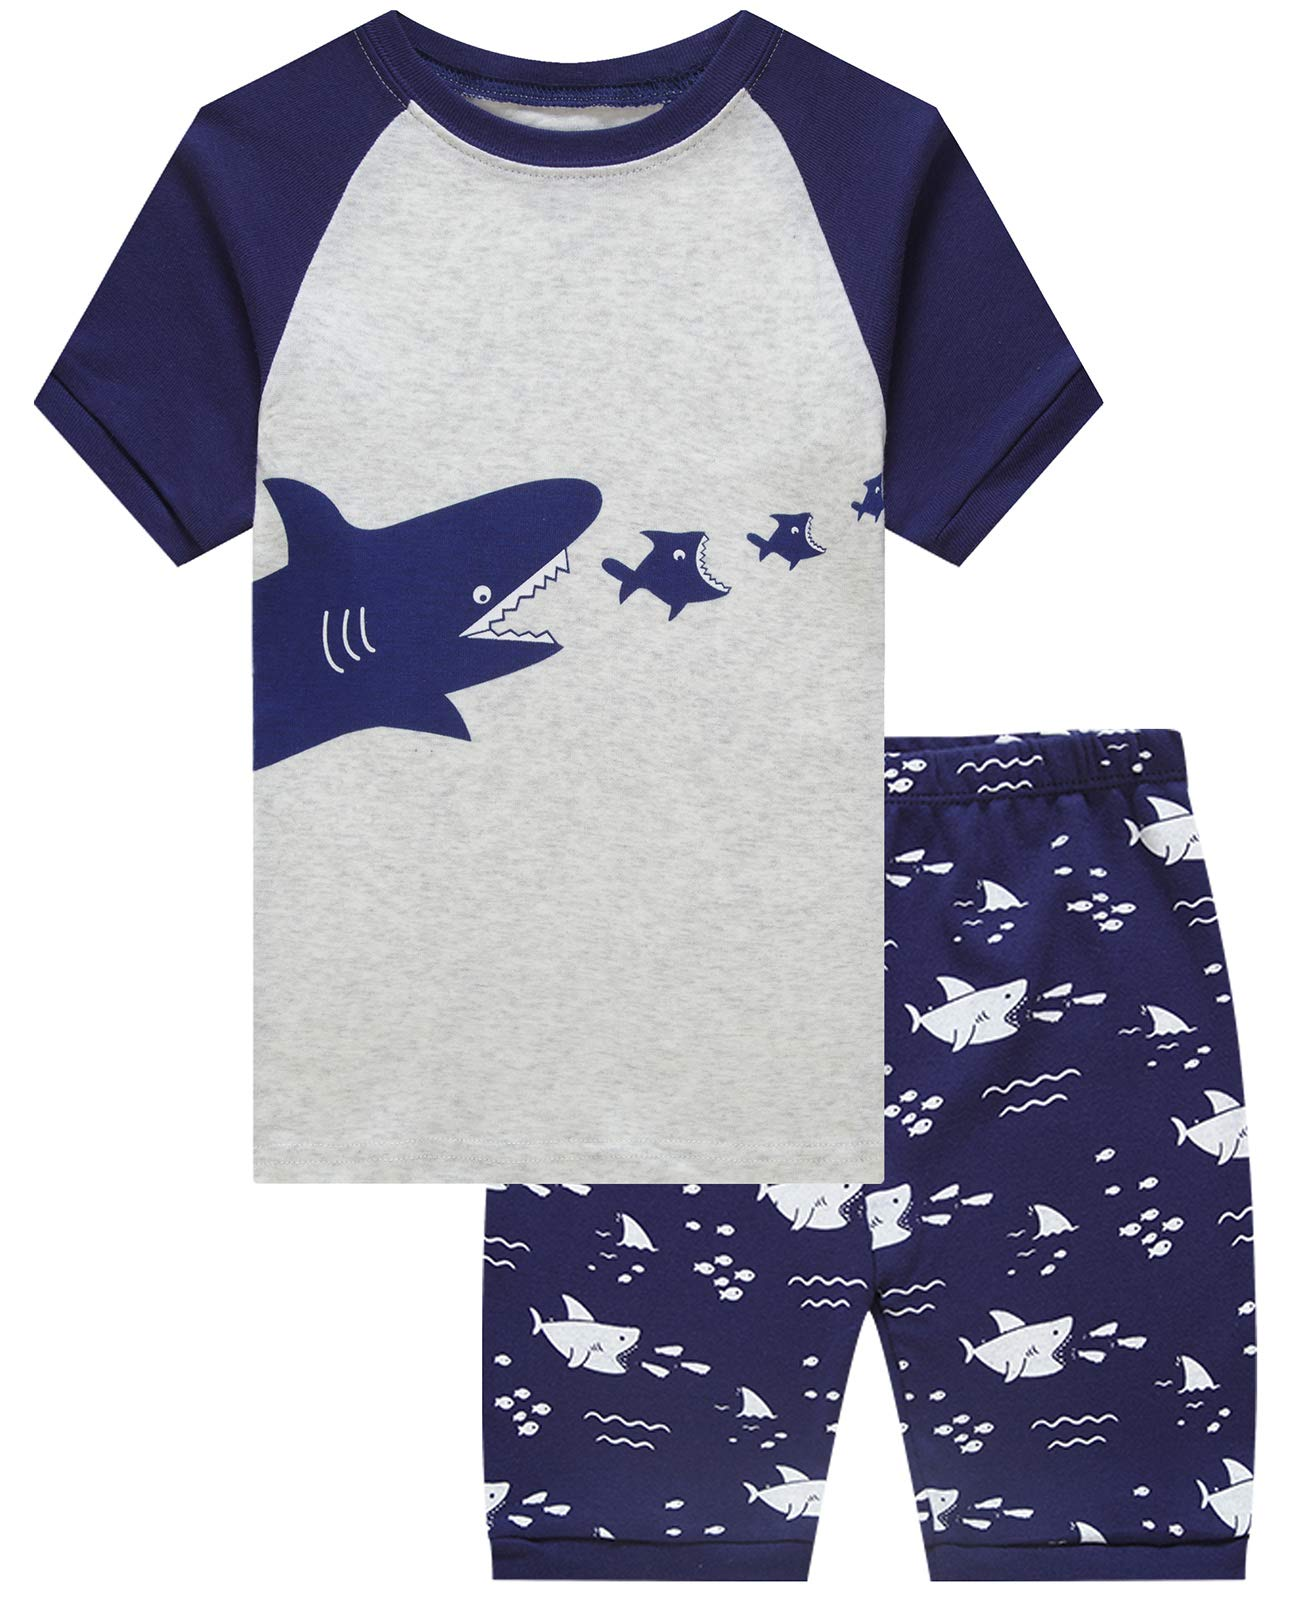 Boys Pajamas Shark Short Sets Toddler Pjs Clothes Kids Sleepwear Summer Shirts Size 14